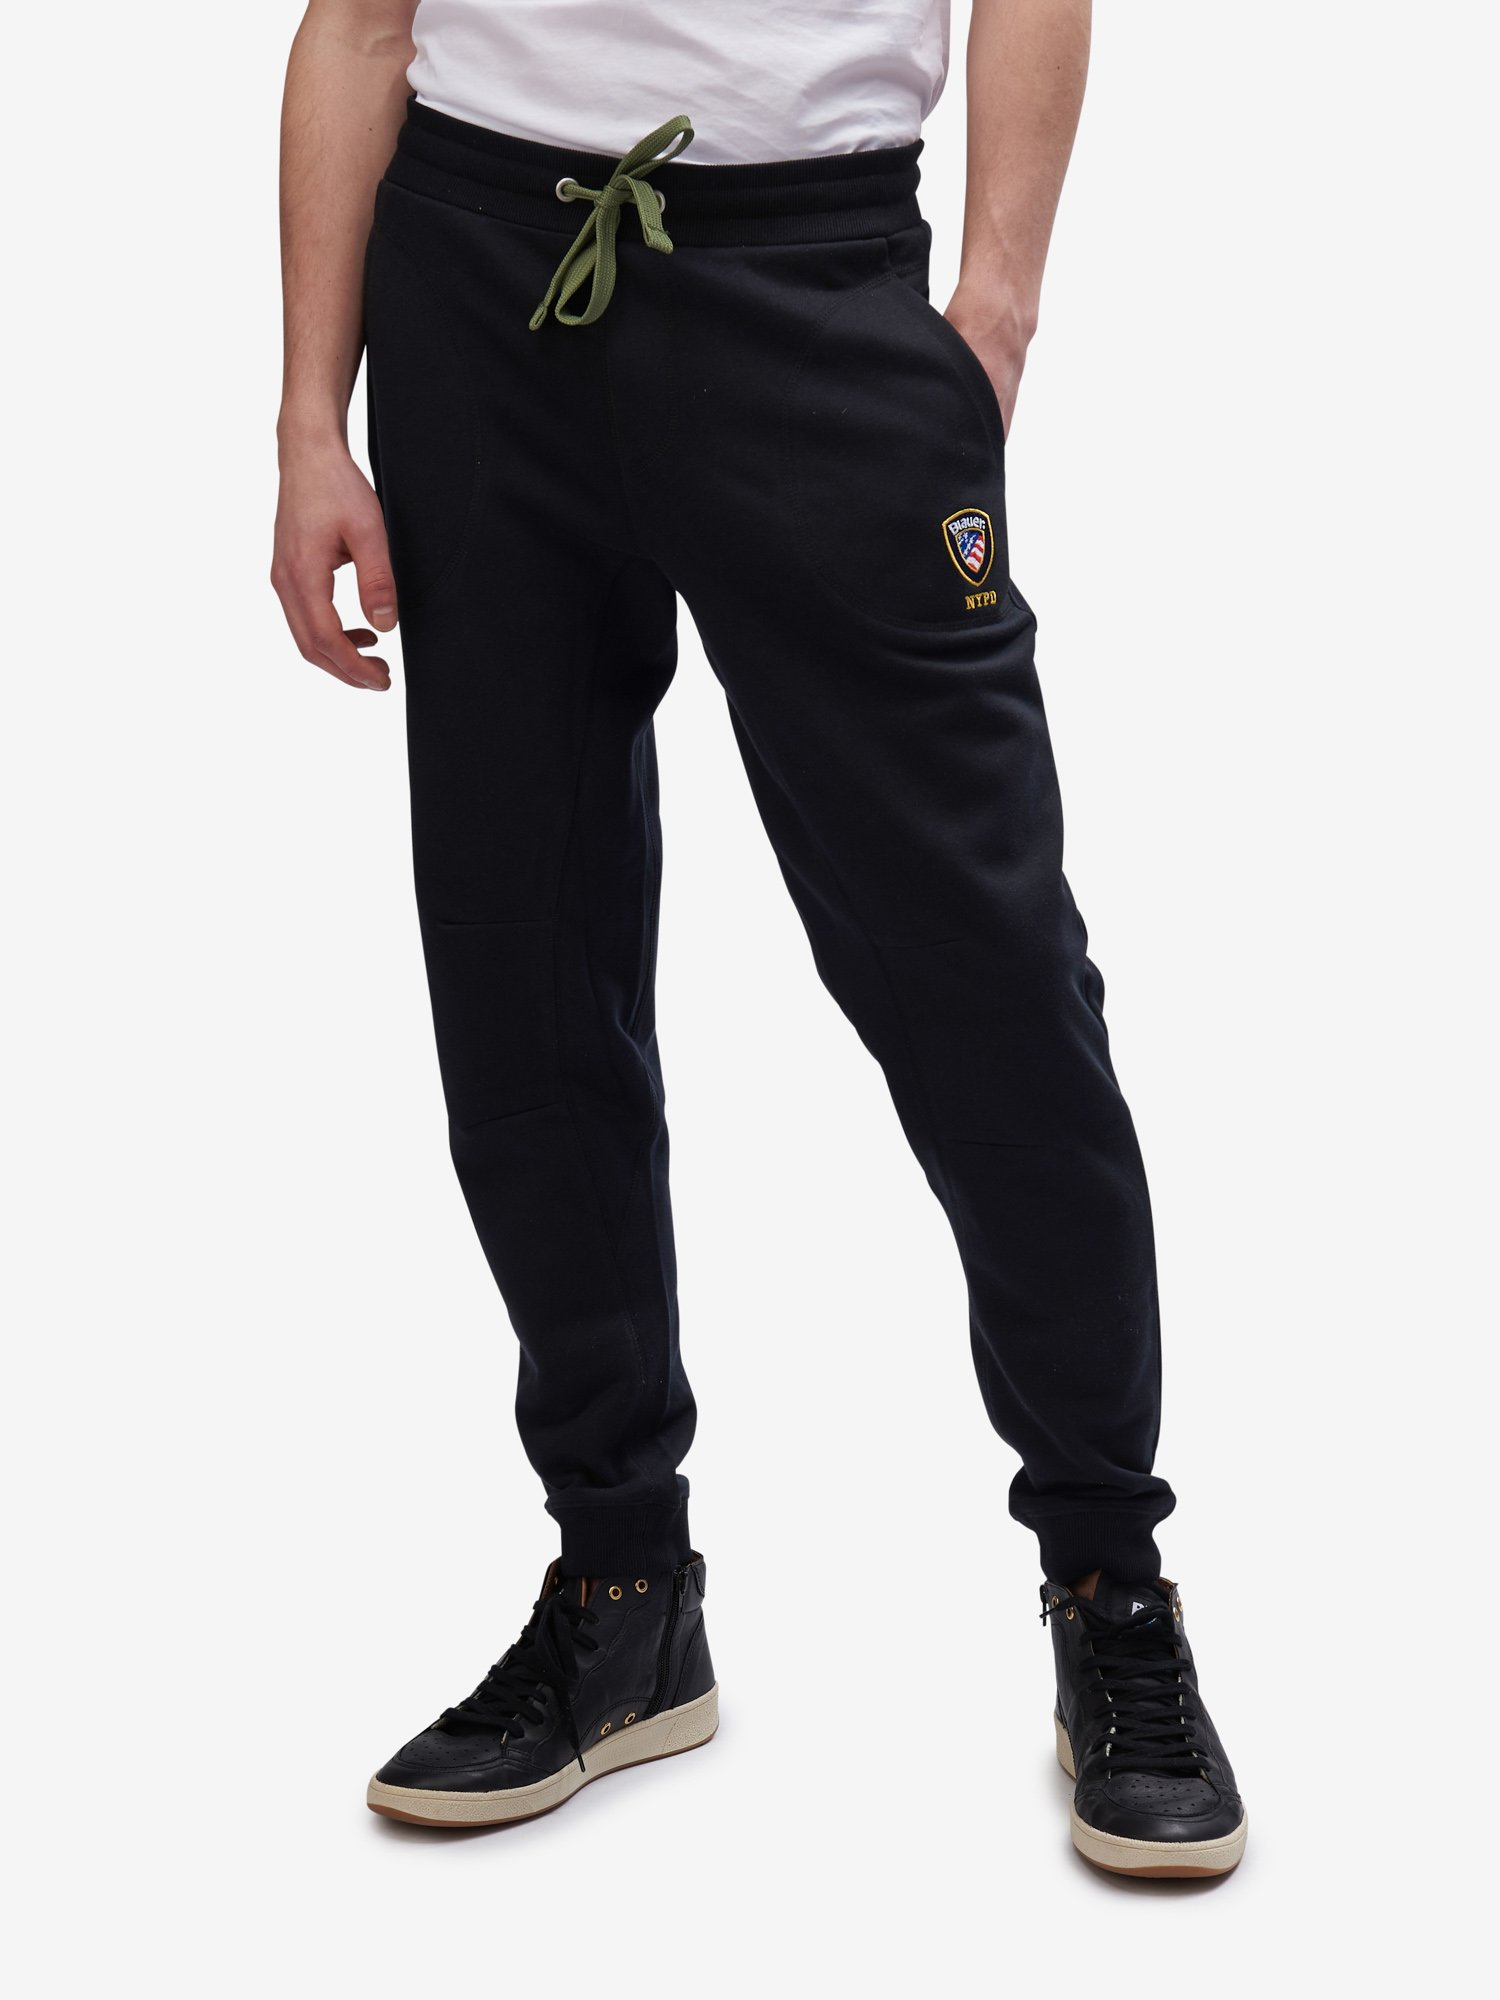 LONG SWEATPANTS - Blauer